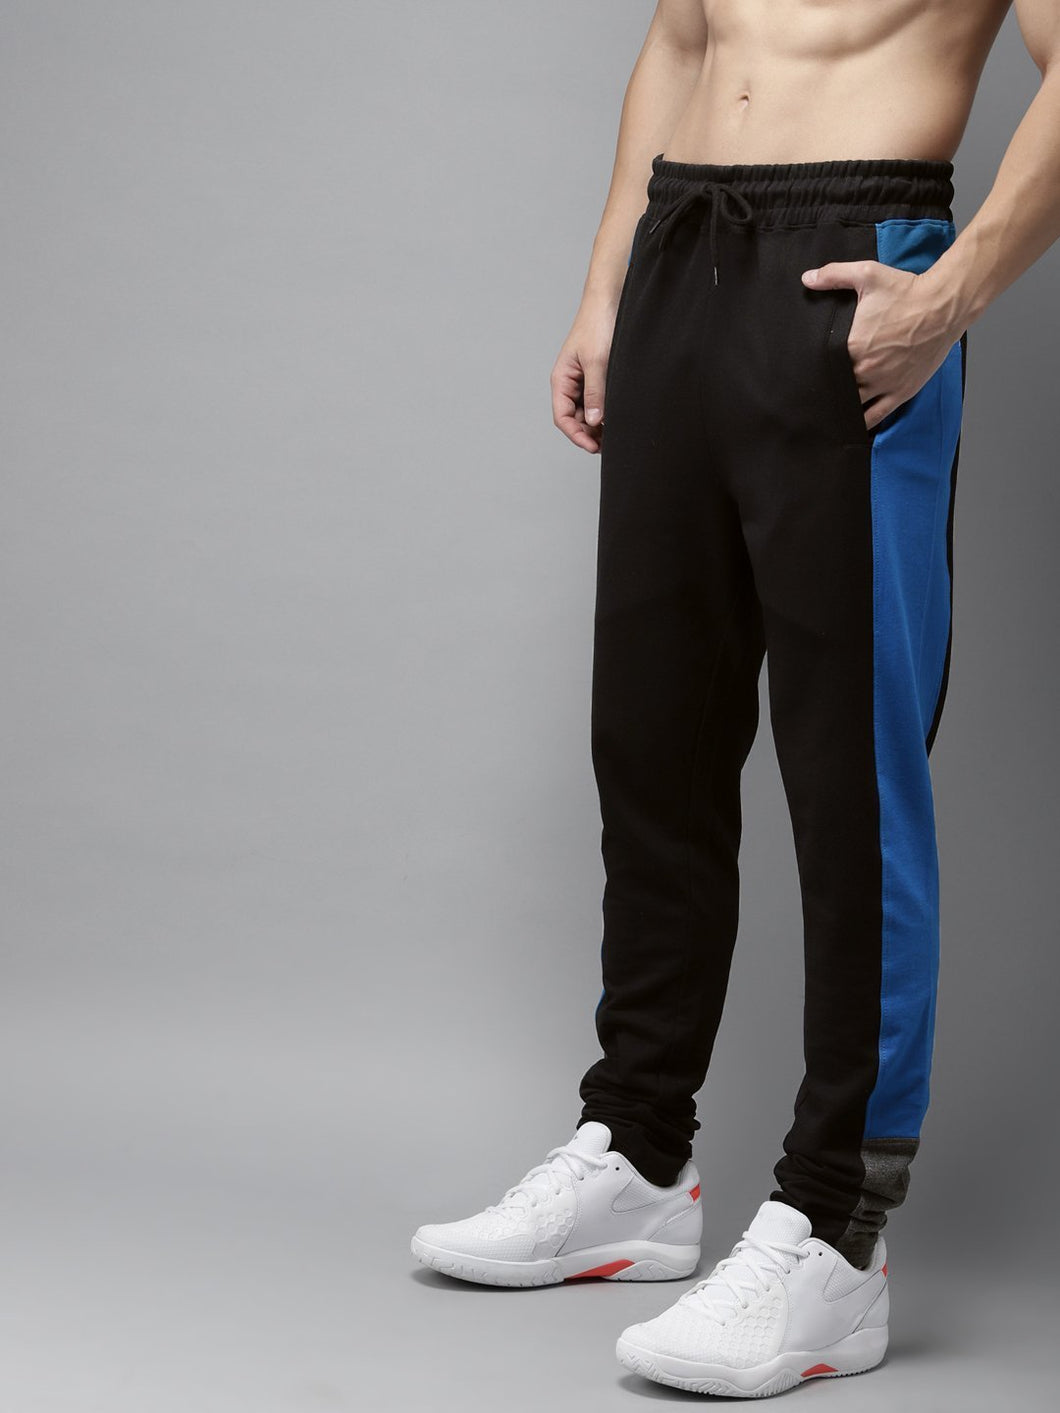 Men Best Fit Joggers PRICE : Rs.549 | Book For Rs.31 Only